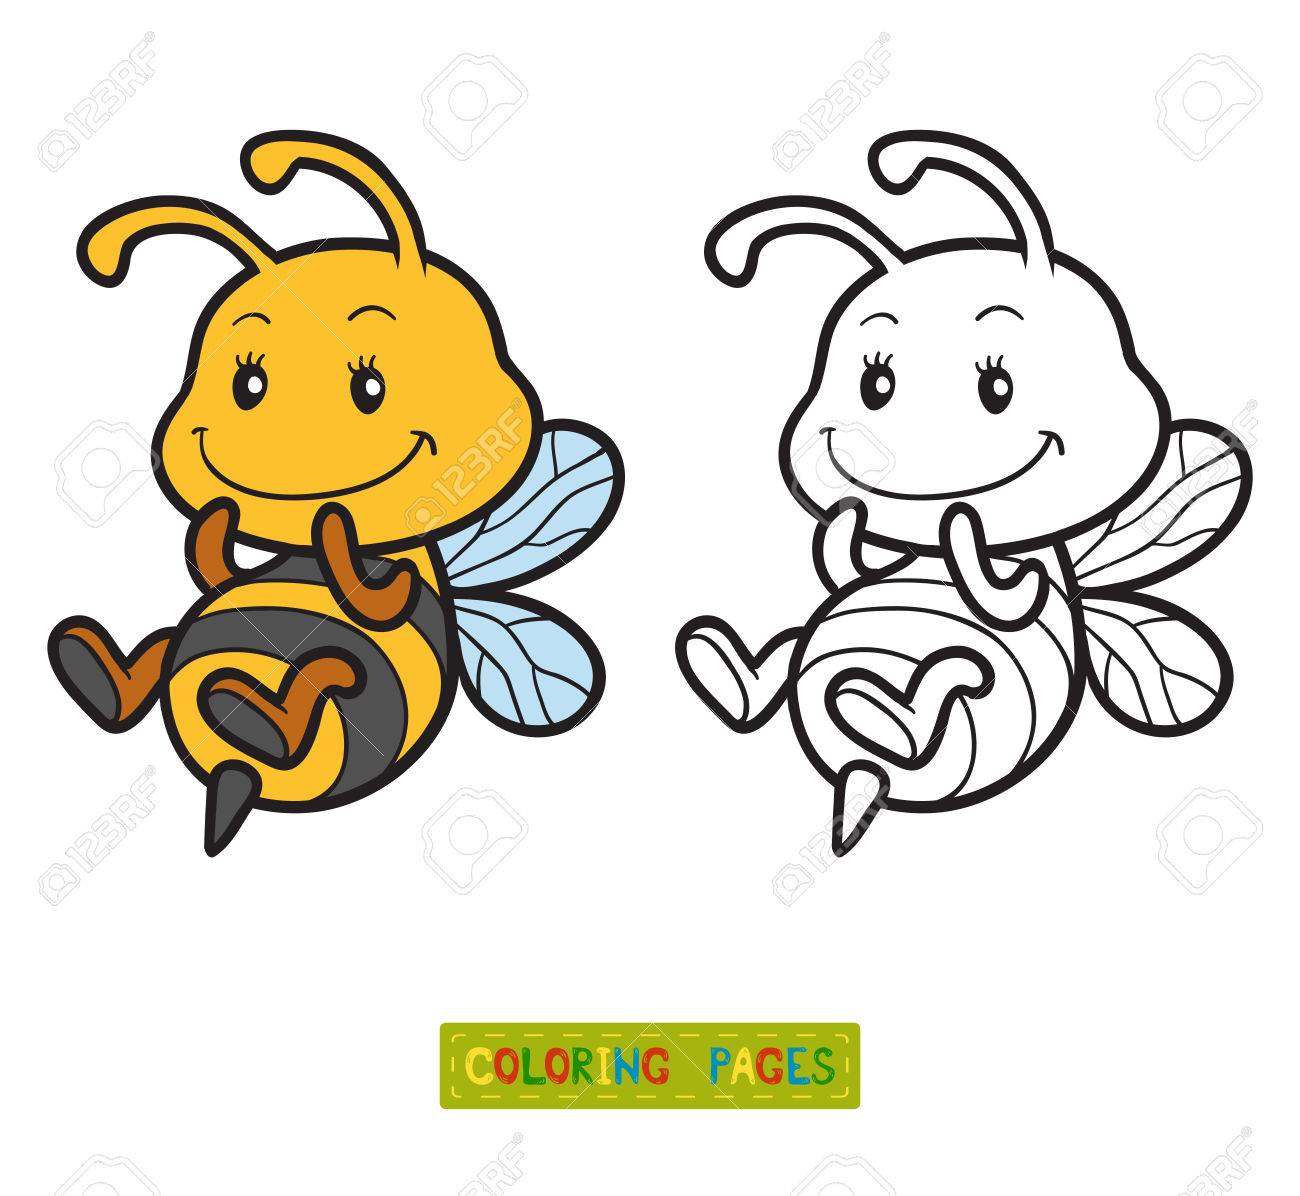 Coloring Book For Children, Coloring Page With A Small Bee Royalty ...